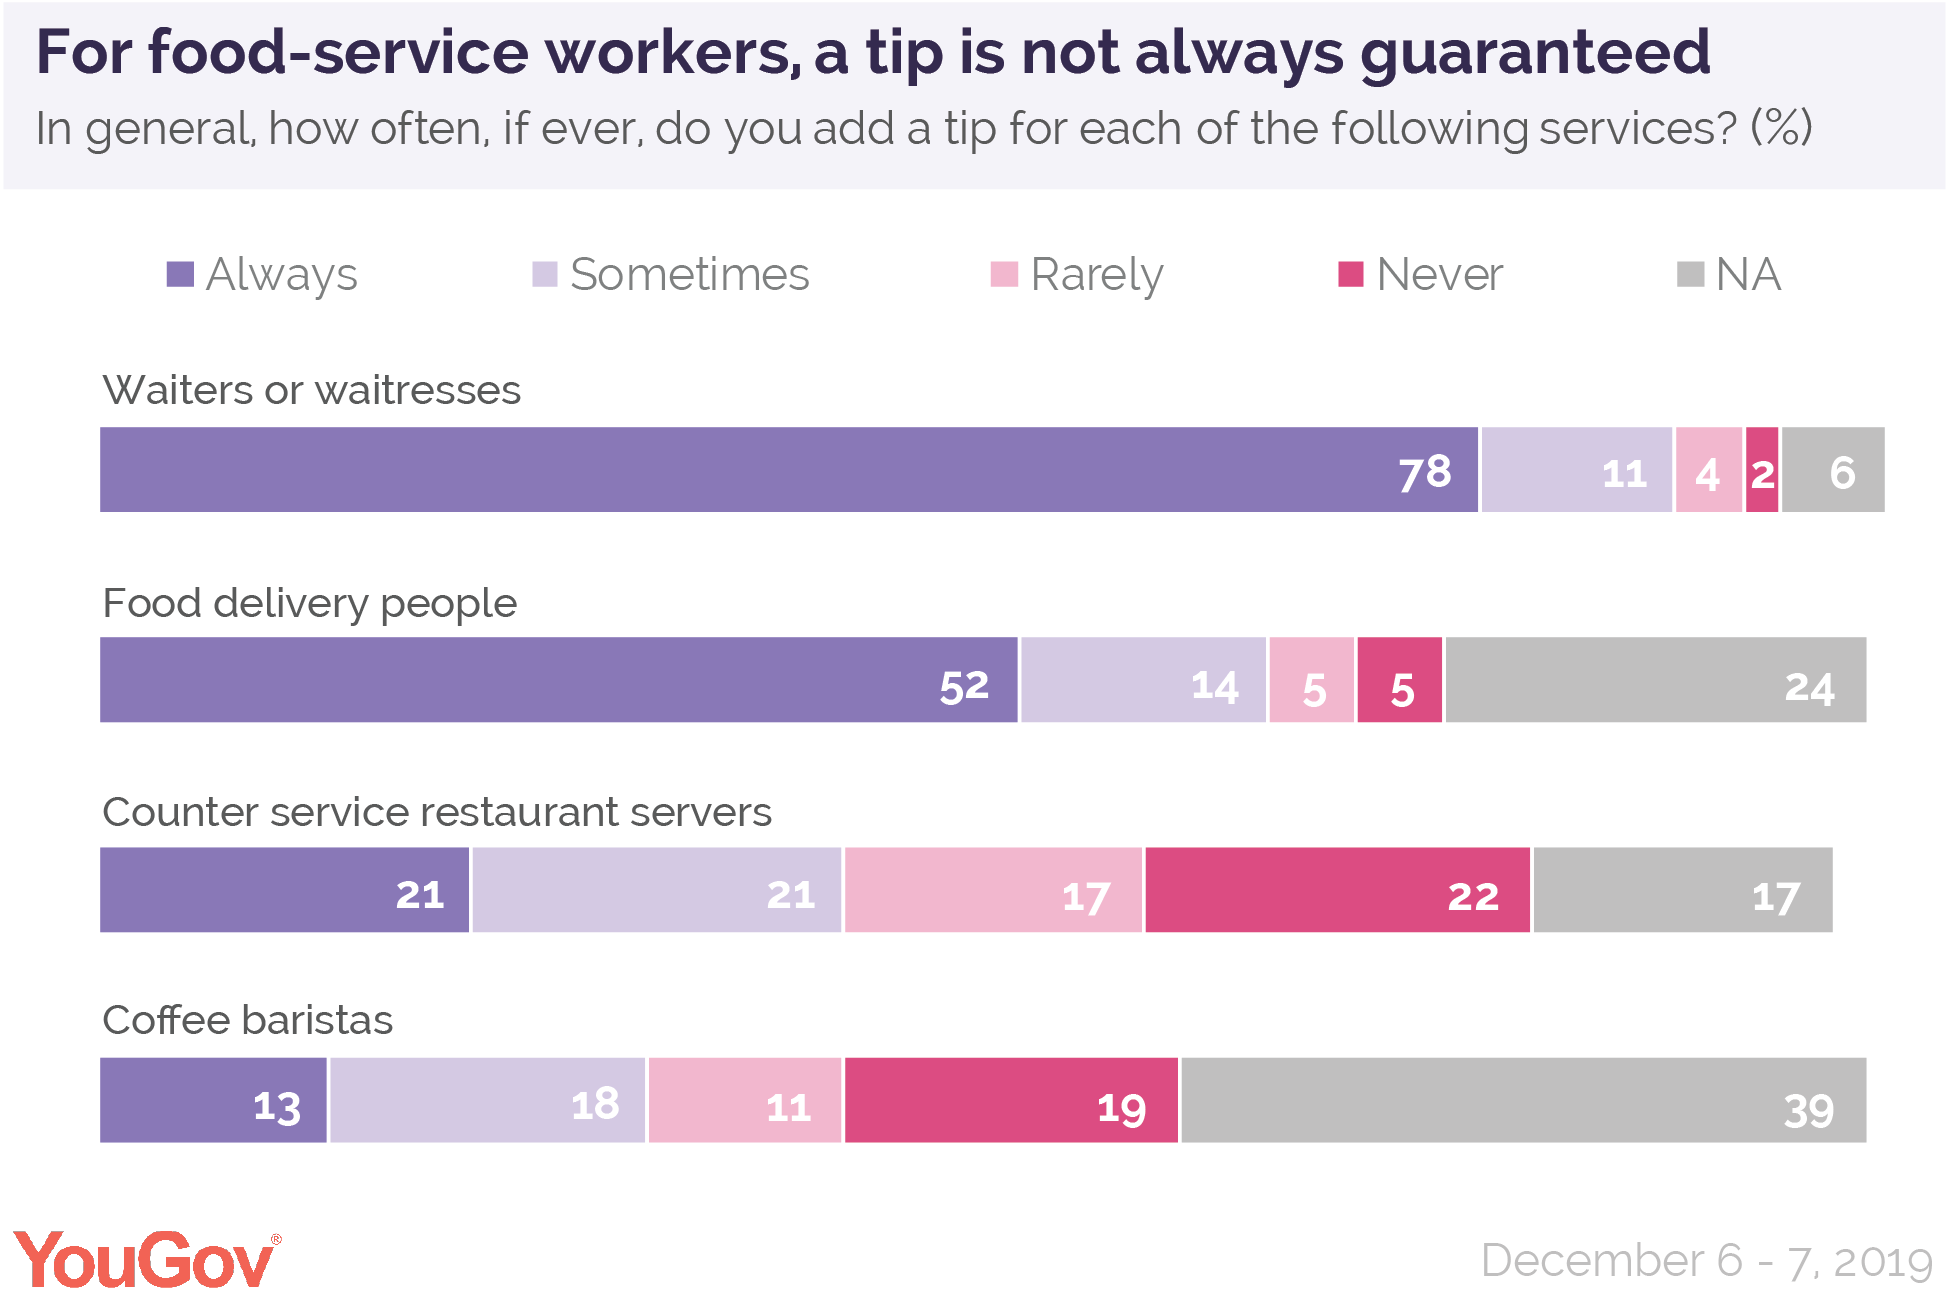 For food service-workers, a tip or gratuity is not always guaranteed